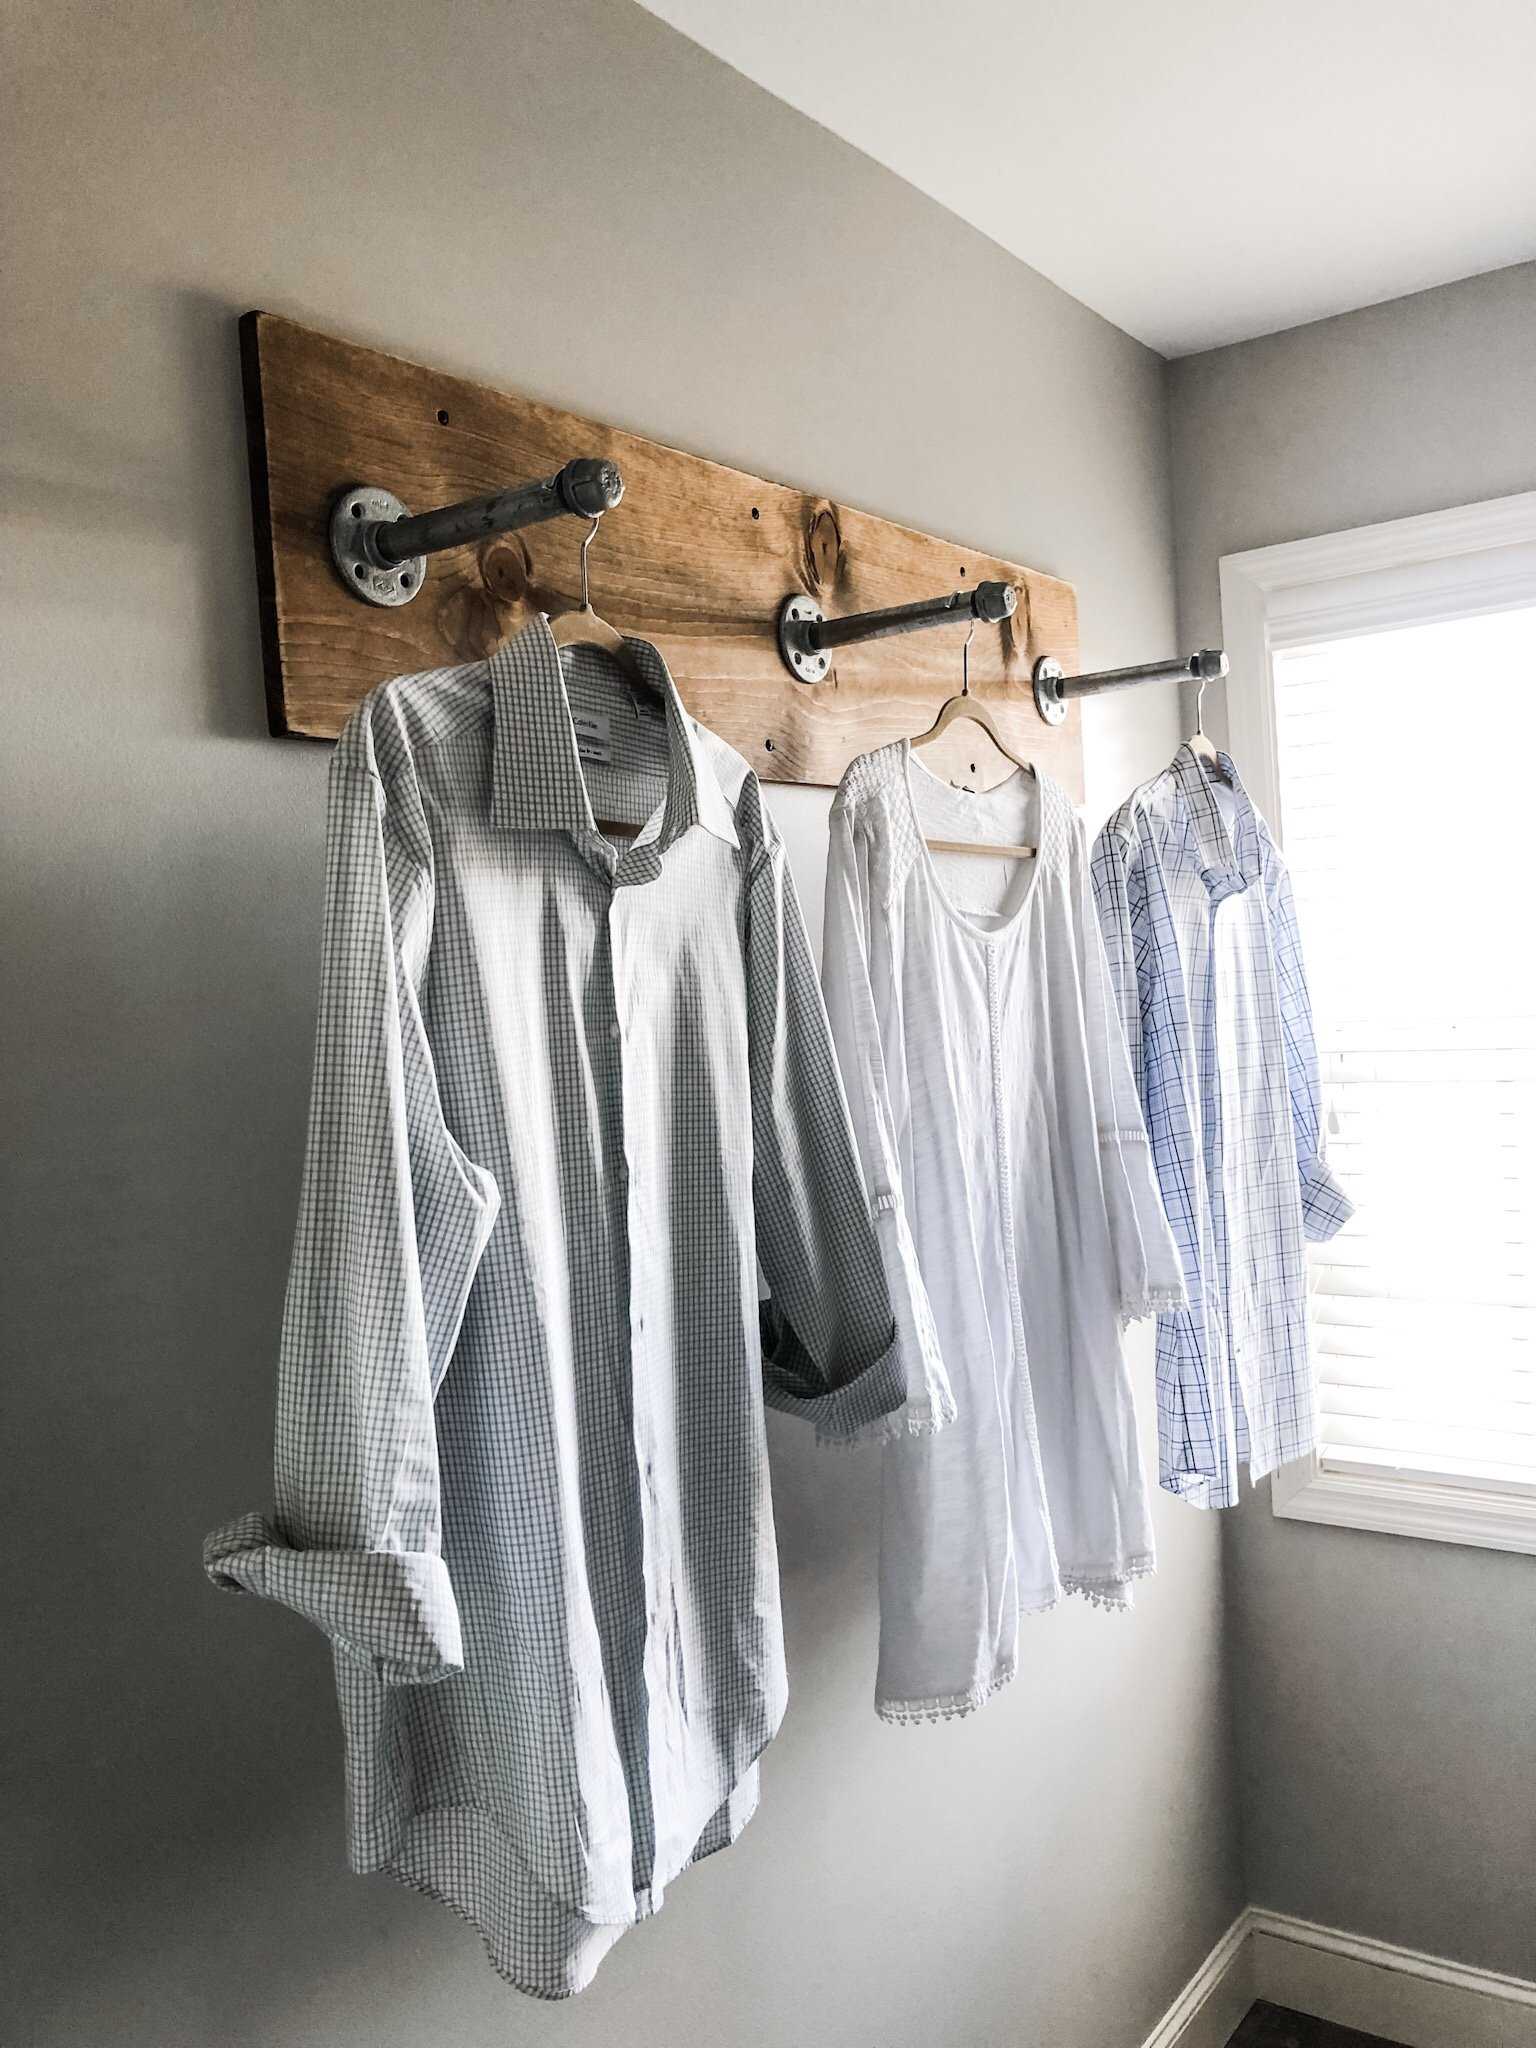 Industrial Clothing Rack Diy Clothing Rack For Your Laundry Room With Industrial Pipes And